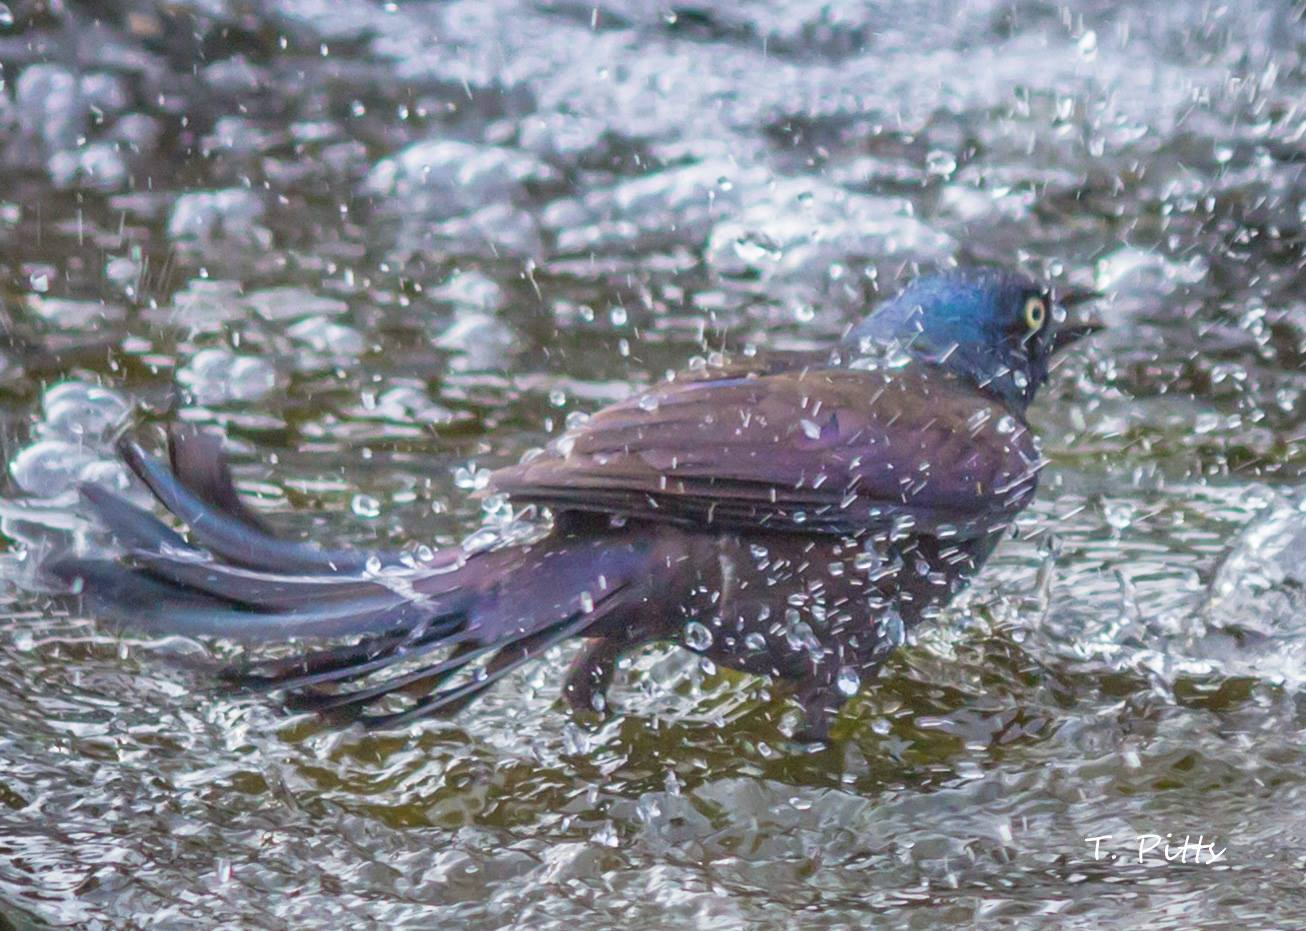 Splish, splash; grackle, crackle. Spring by Terri Pitts